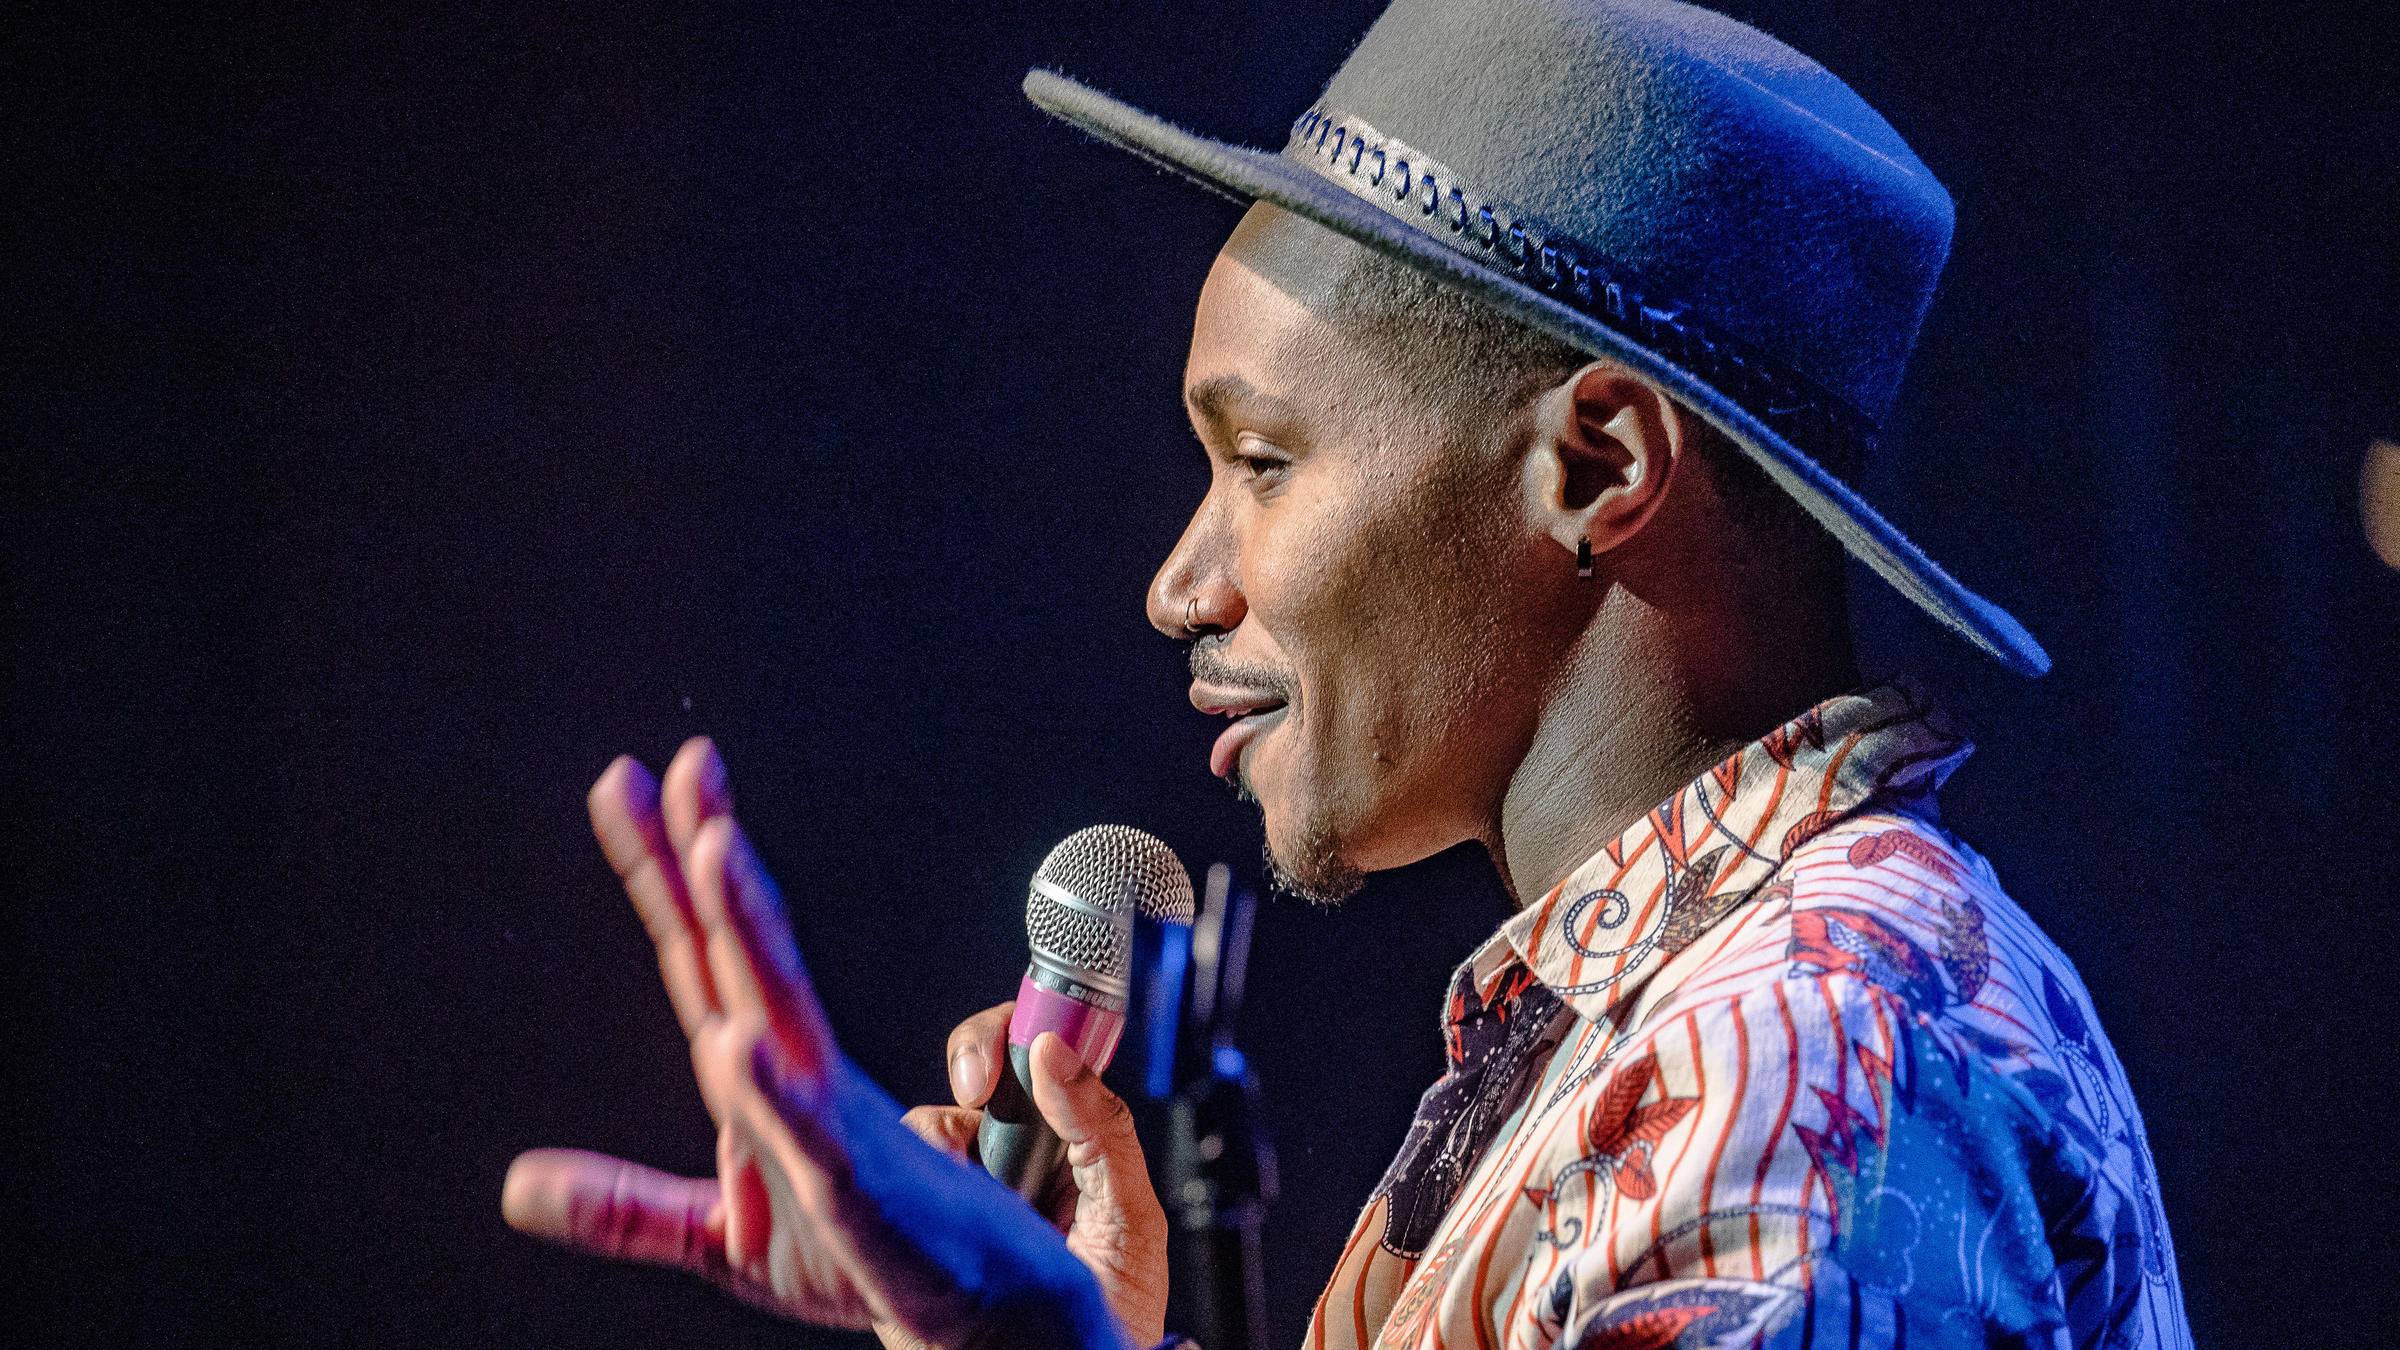 New Faces Emerge At The World's Biggest Comedy Festival